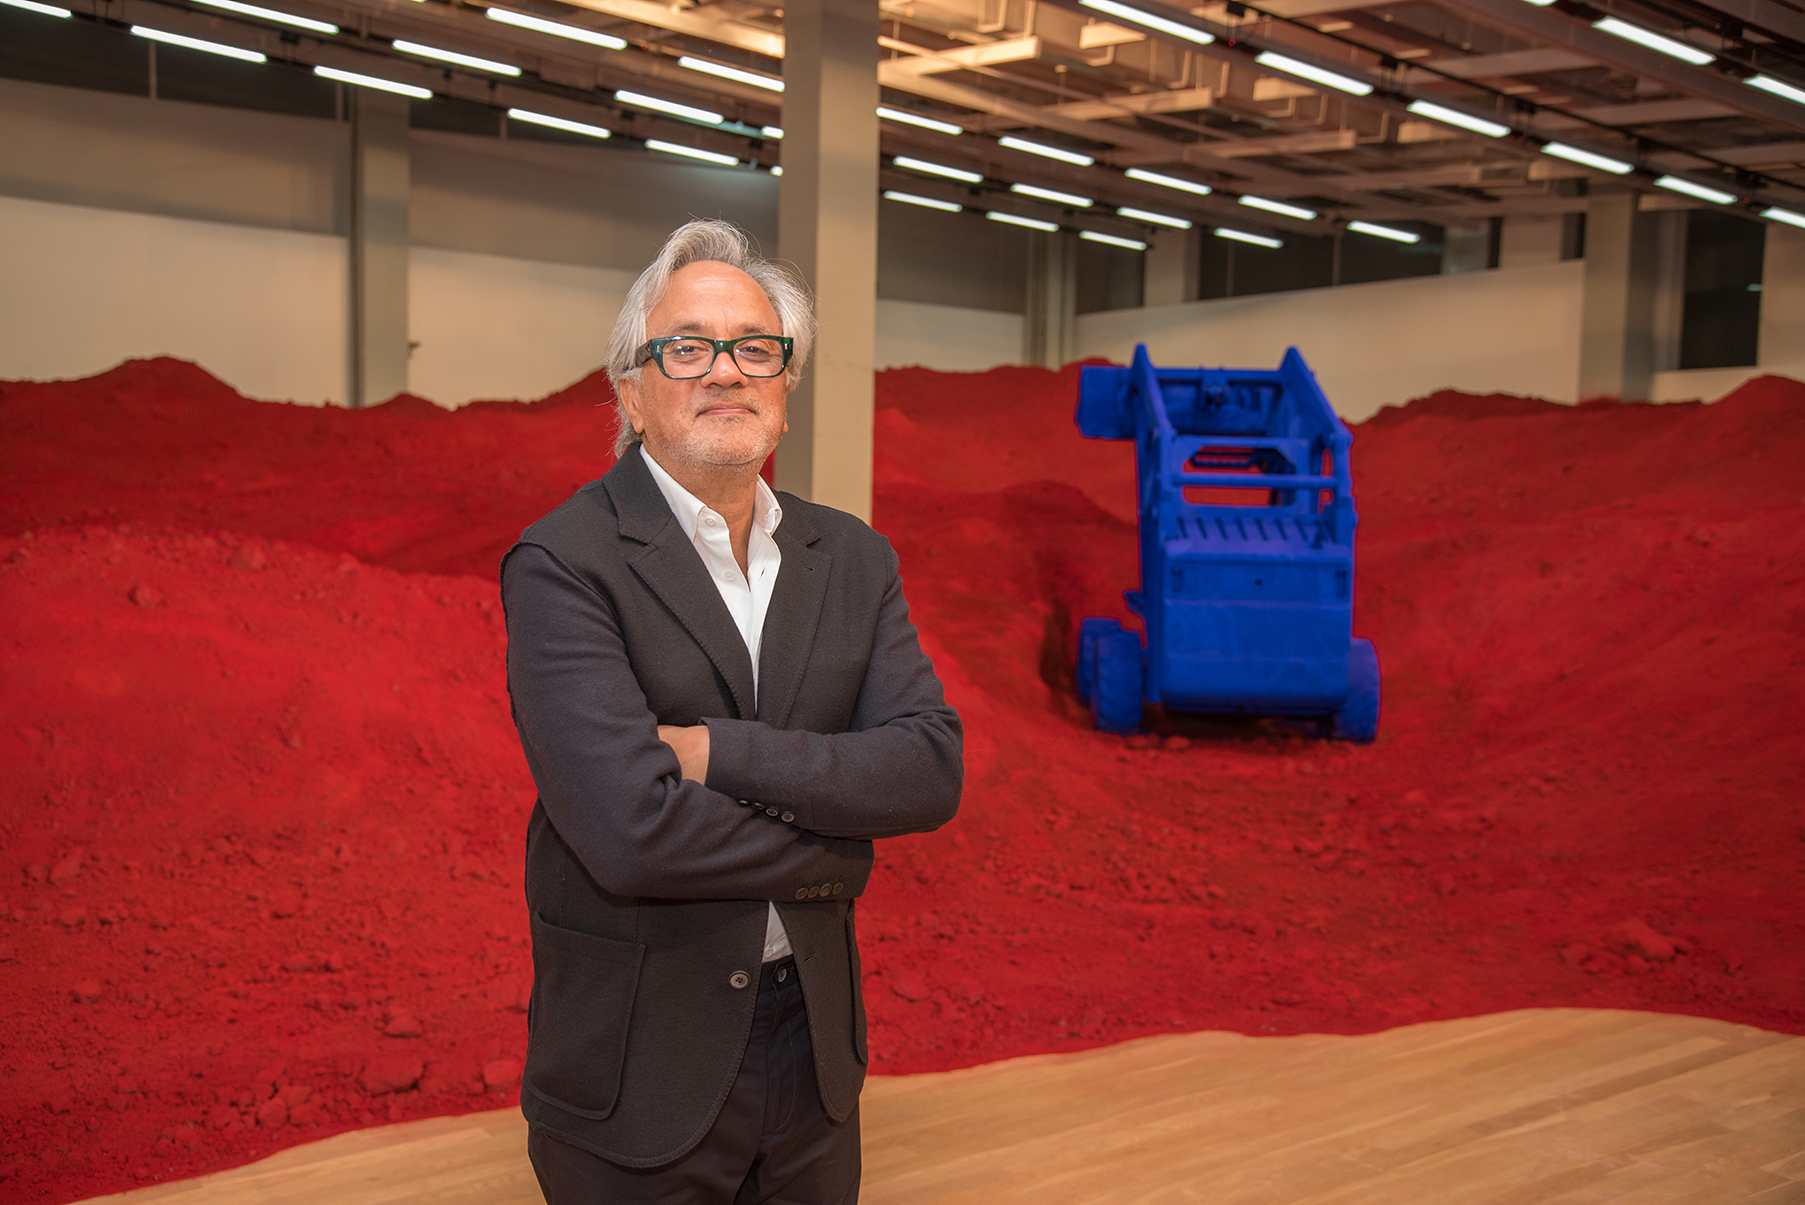 Anish Kapoor dyes this earth red in memory of refugees